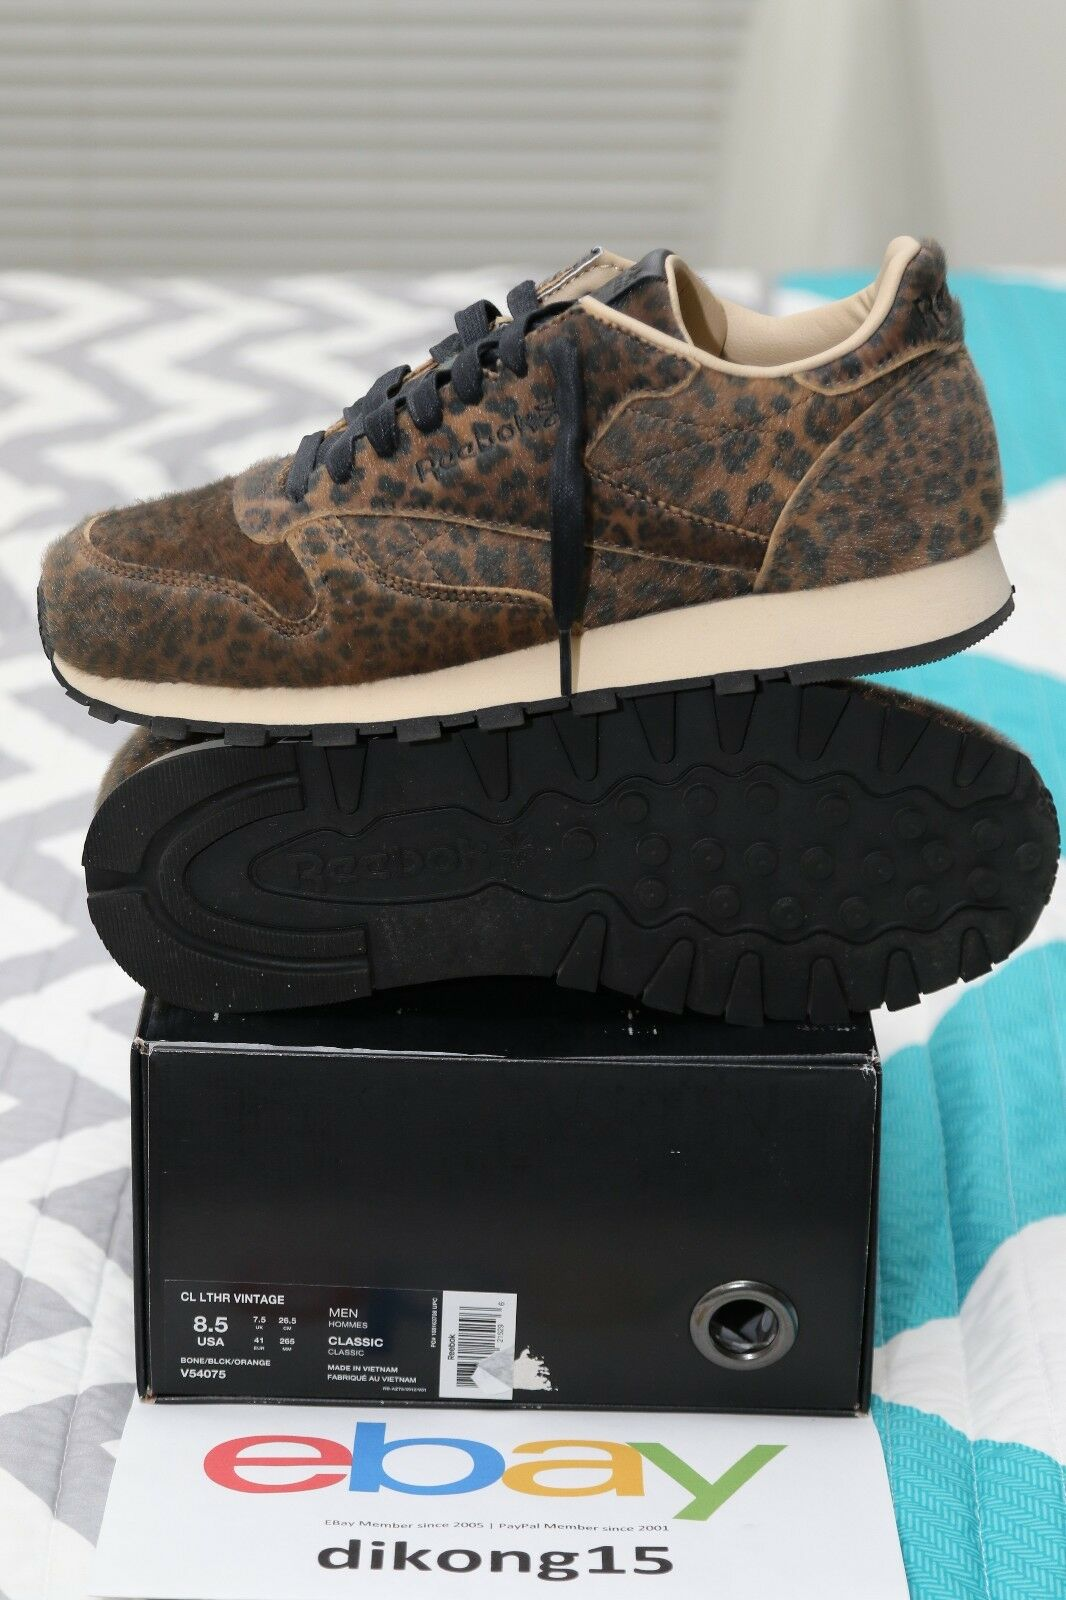 Reebok Classic Cheetah Leather x Head Porter Plus Cheetah Classic (8.5 Uomo = 10 WMNS) 4c1b98